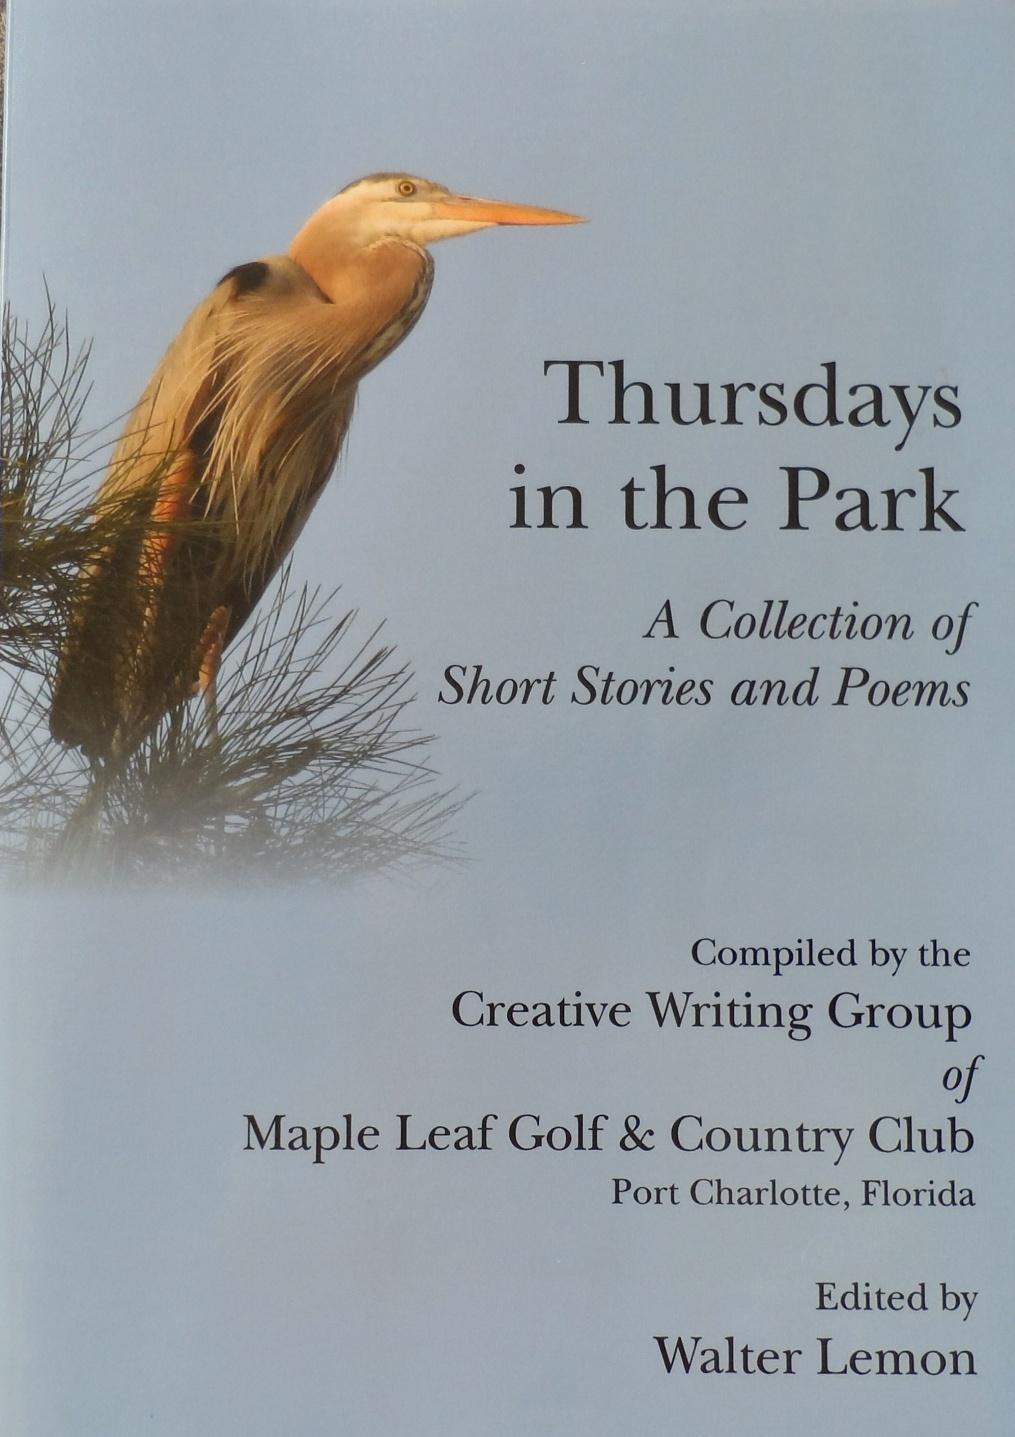 Thursdays in the Park A Collection of Short Stories and Poems Published 2012 by Ward Bitz Publishing This book is a sample of the short stories and poems produced by past and present participants in